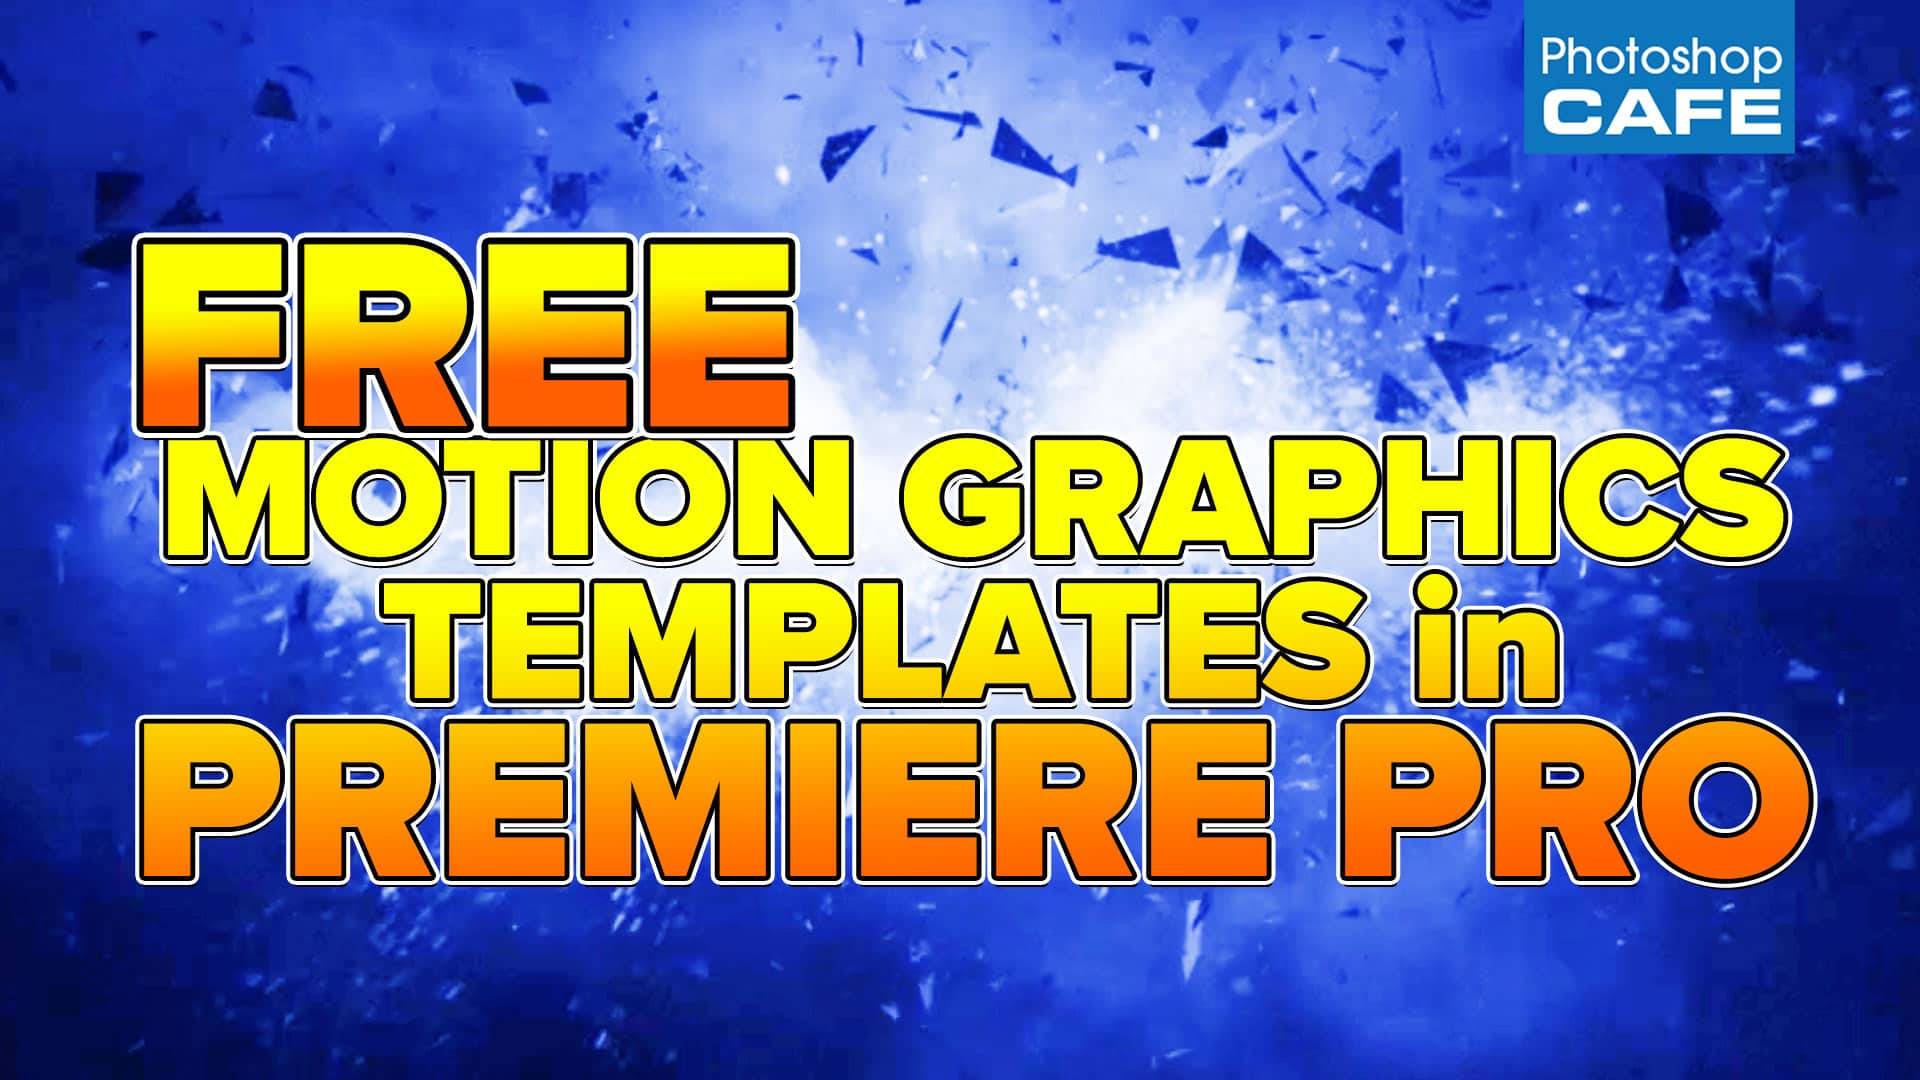 how to use editable motion graphics templates in premiere pro photoshopcafe. Black Bedroom Furniture Sets. Home Design Ideas